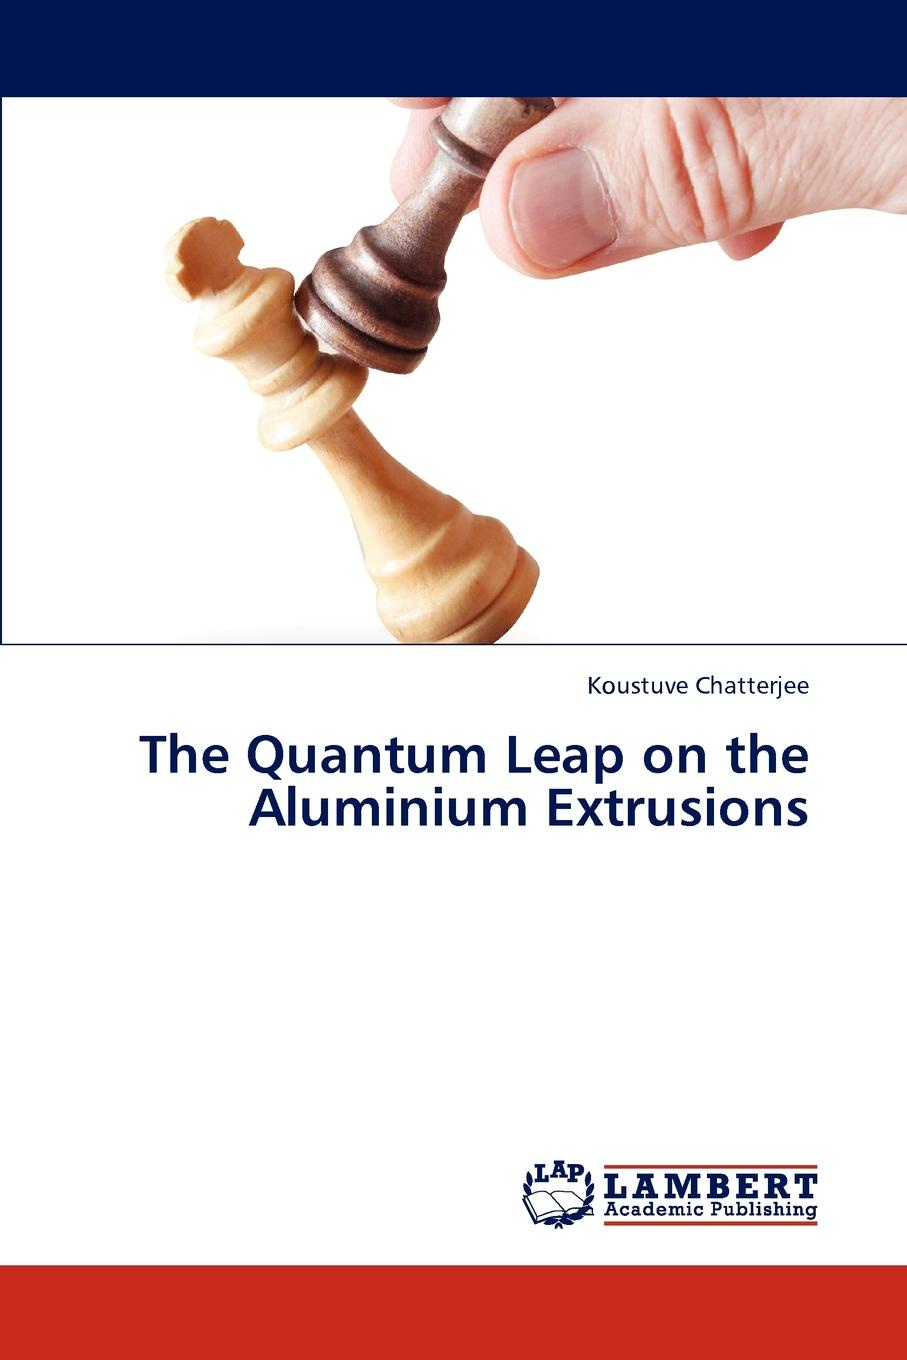 Koustuve Chatterjee The Quantum Leap on the Aluminium Extrusions